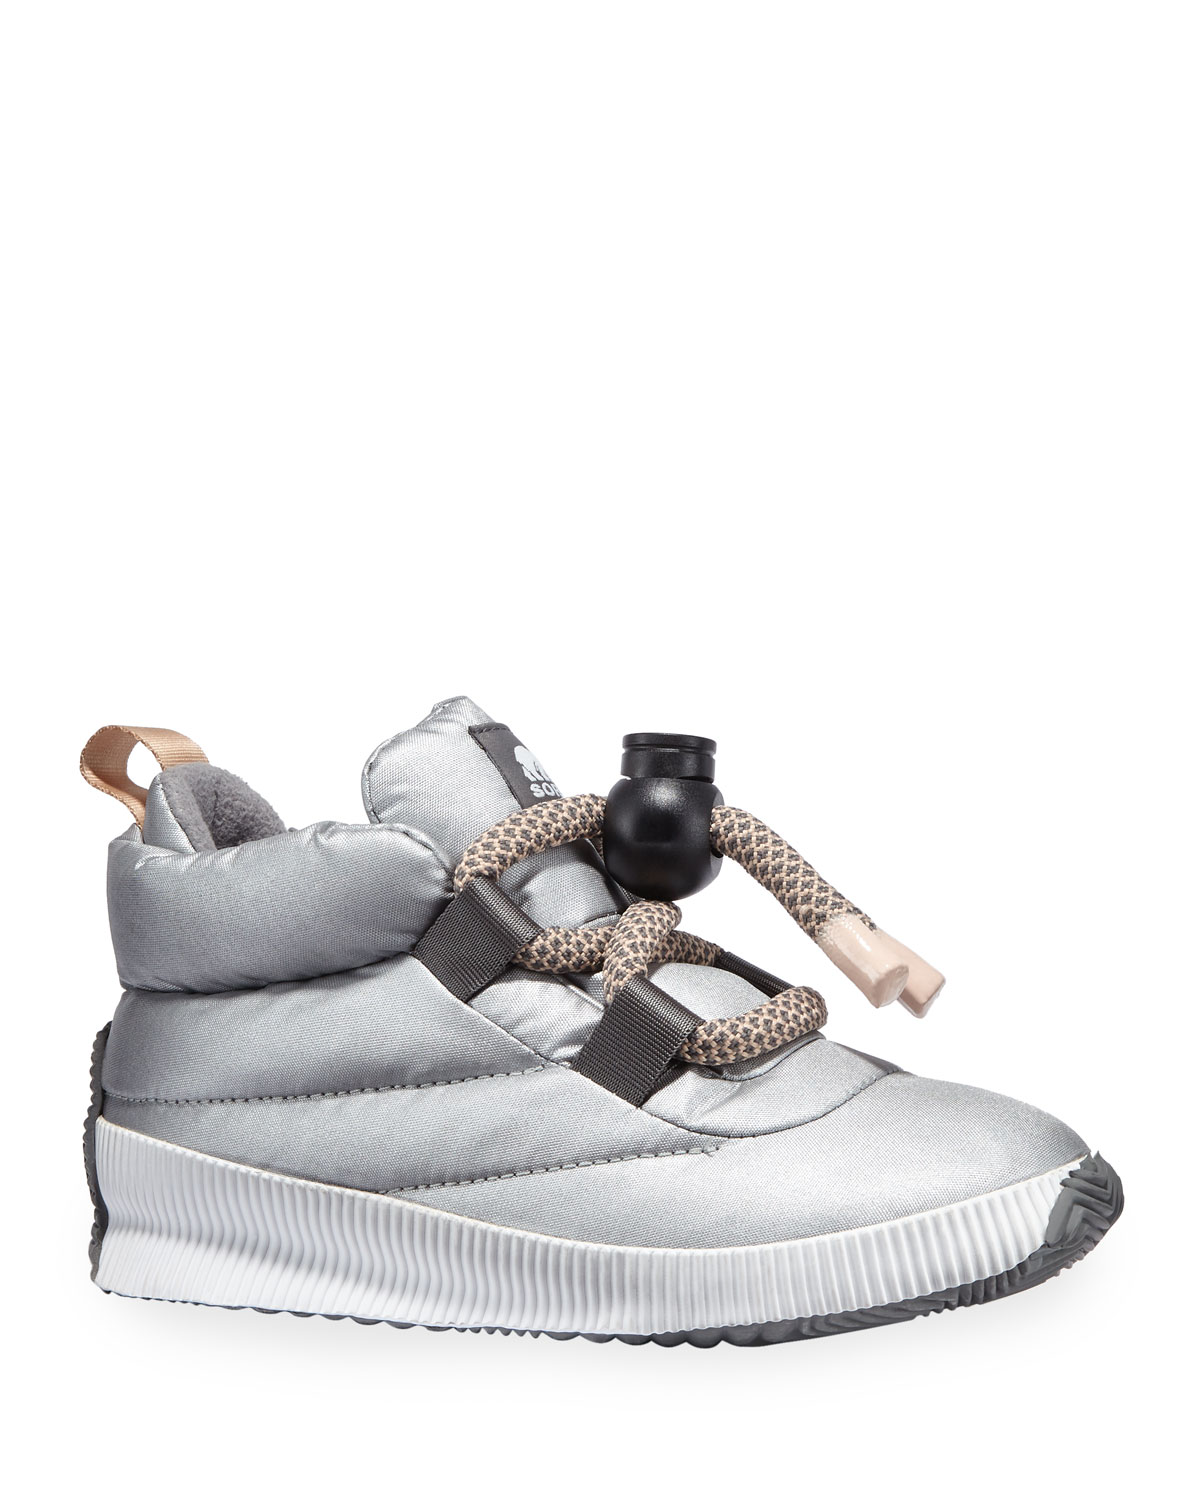 Out 'N About Puffy Waterproof Sneaker Booties